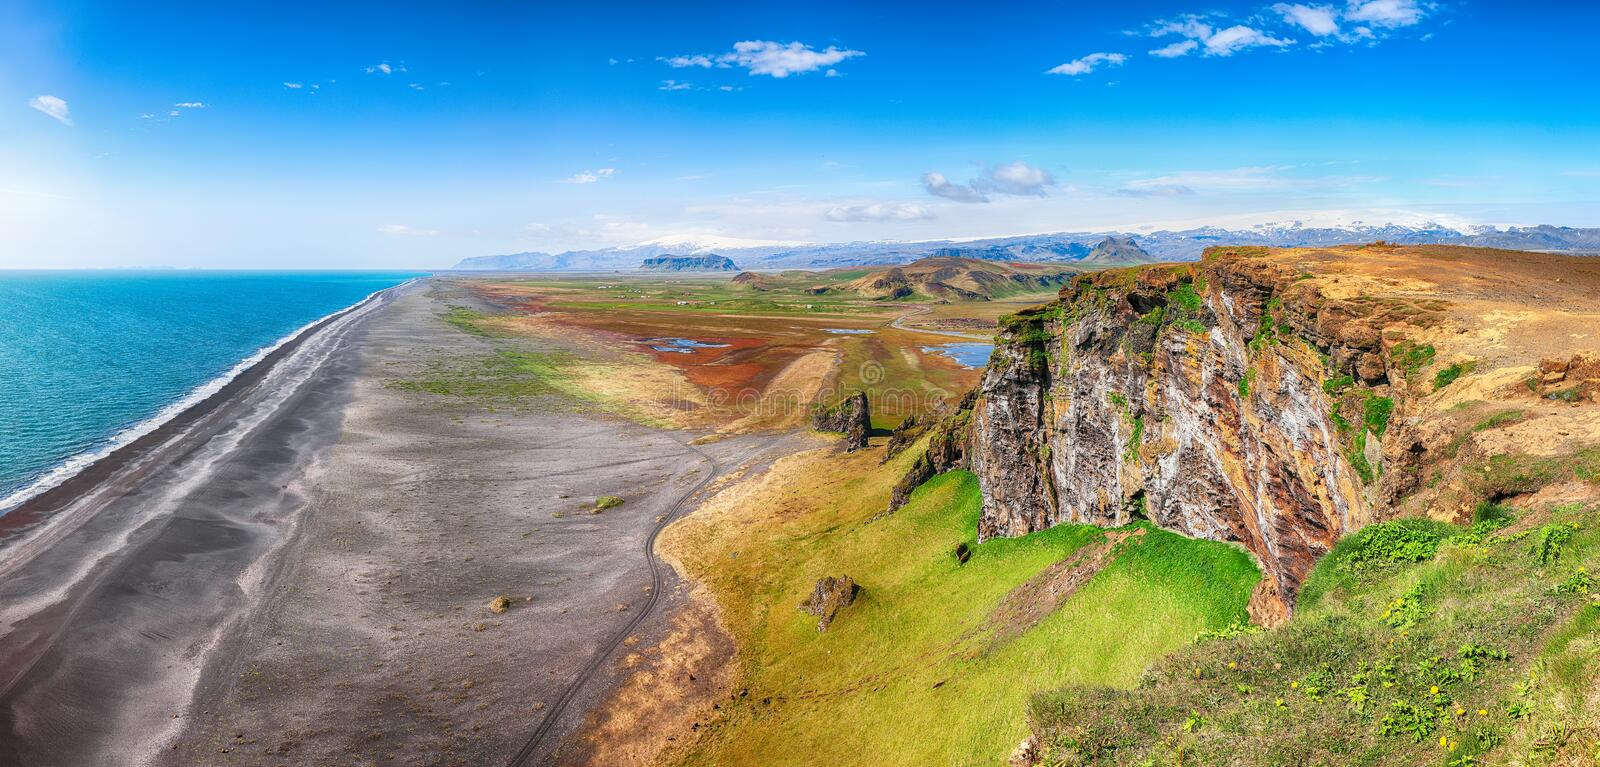 View of Kirkjufjara black sand beach from Dyrholaey promontory royalty free stock photos